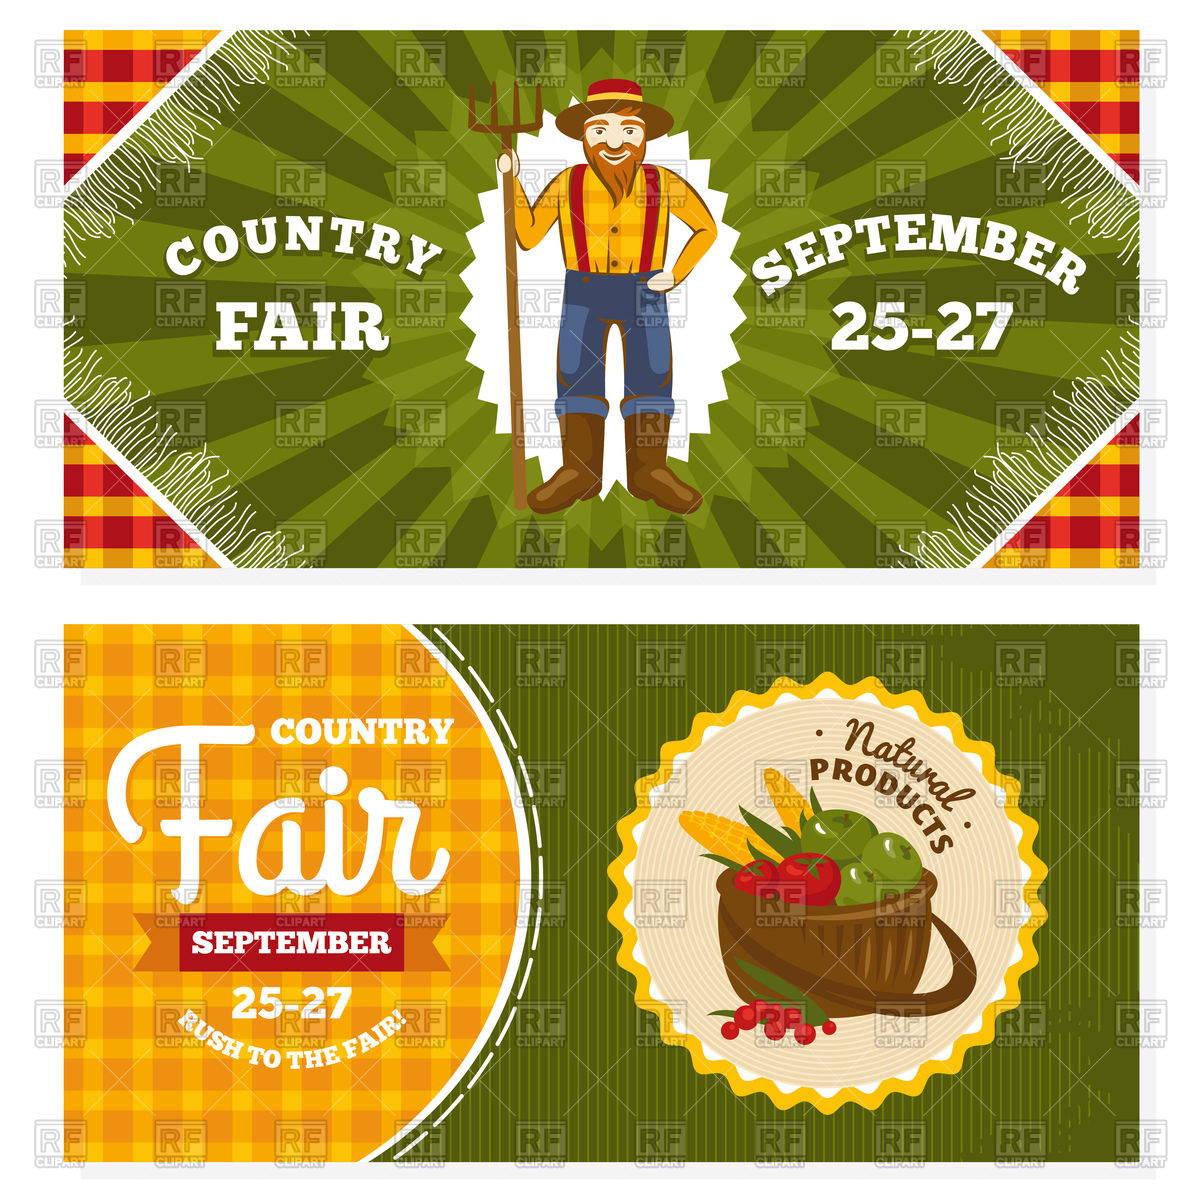 Country Fair   Vintage Invitation Cards 93709 Download Royalty Free